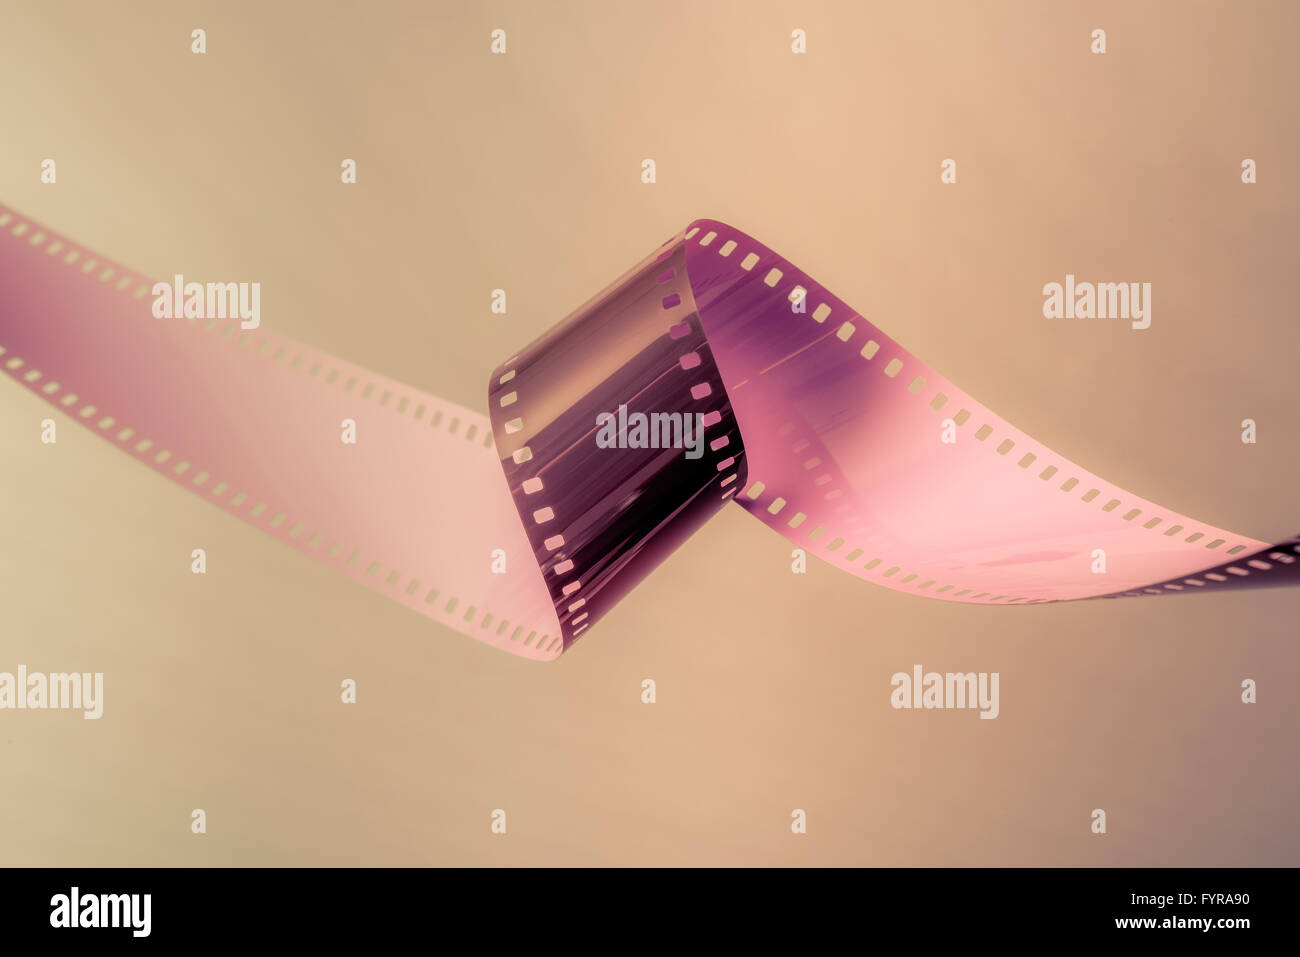 35mm film strip as used in film and photography industries Stock Photo